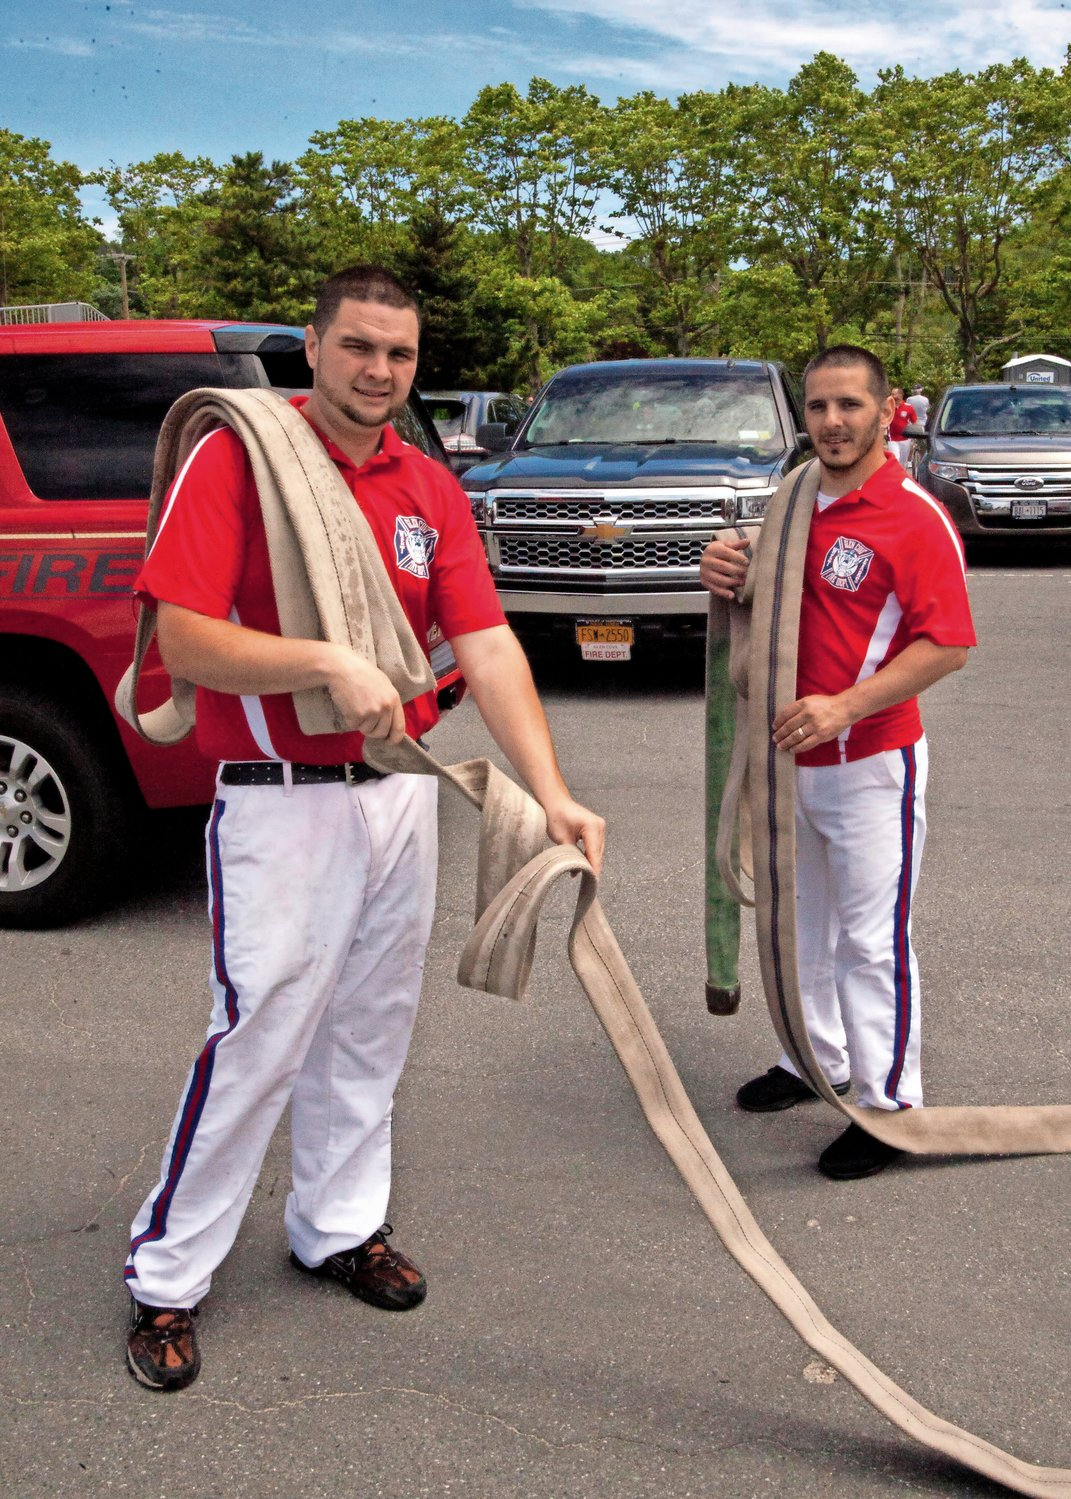 Nick Laskowski, left, and Andrew Molillo of the Glen Cove Fire Department's Wet Ears, untangled a hose on the side of the racetrack.